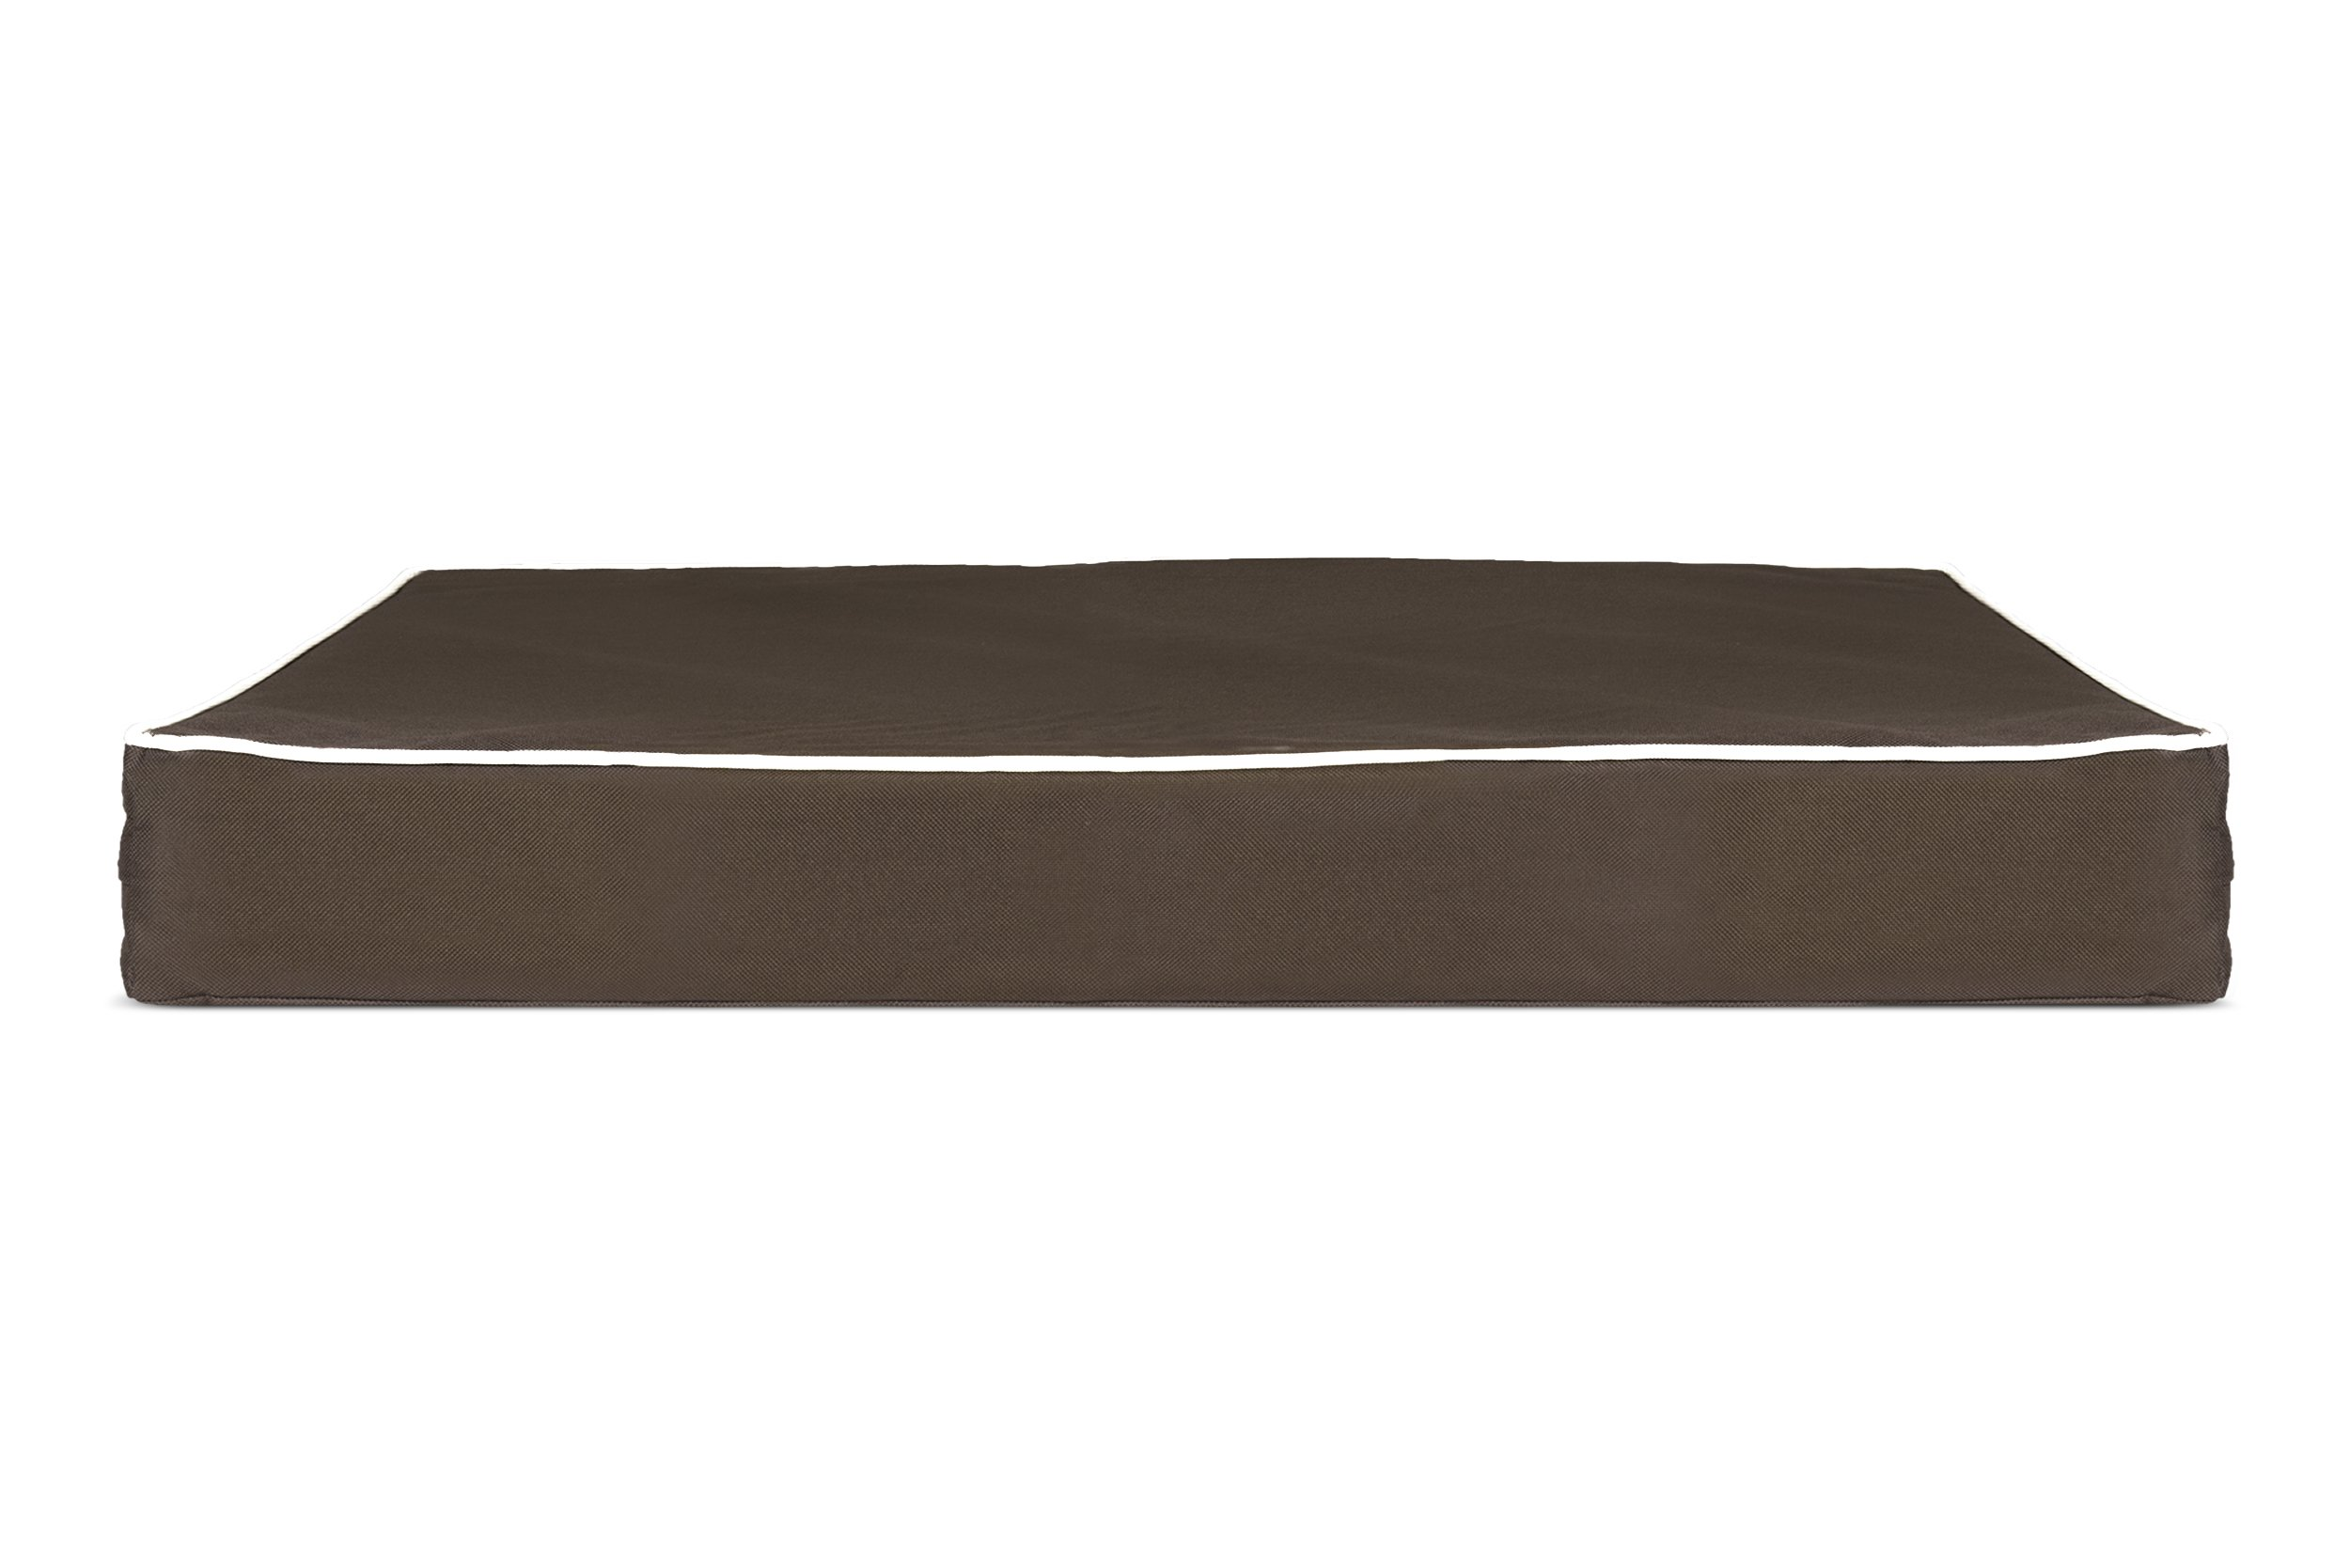 FurHaven Deluxe Orthopedic Indoor/Outdoor Pet Bed Mattress for Dogs and Cats, Espresso w/Cream Trim, Small